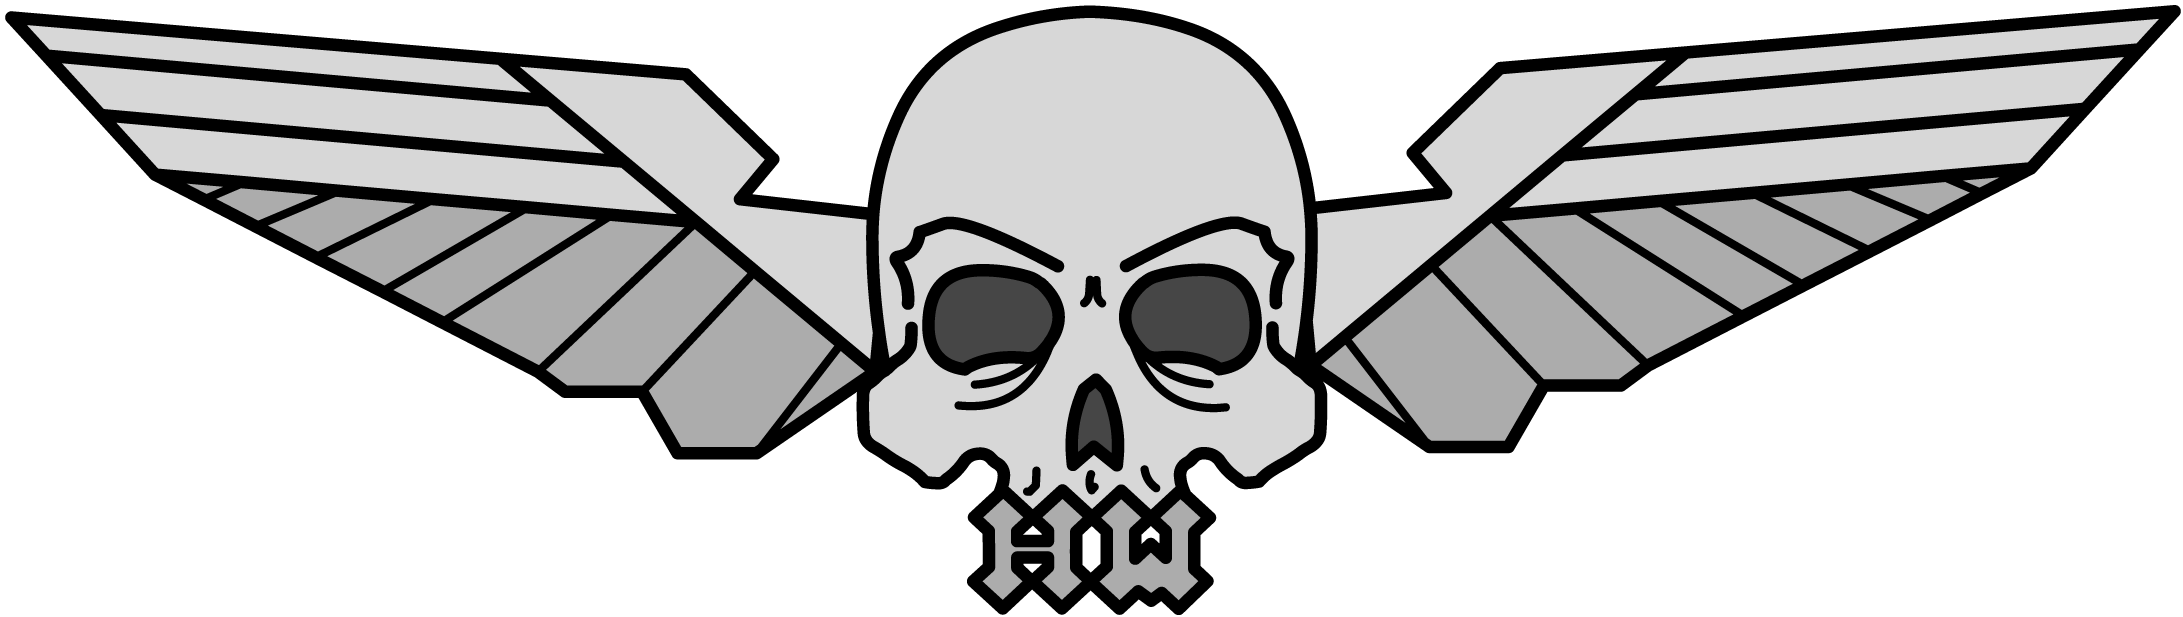 Biography hardwire and wings. Wing clipart skull